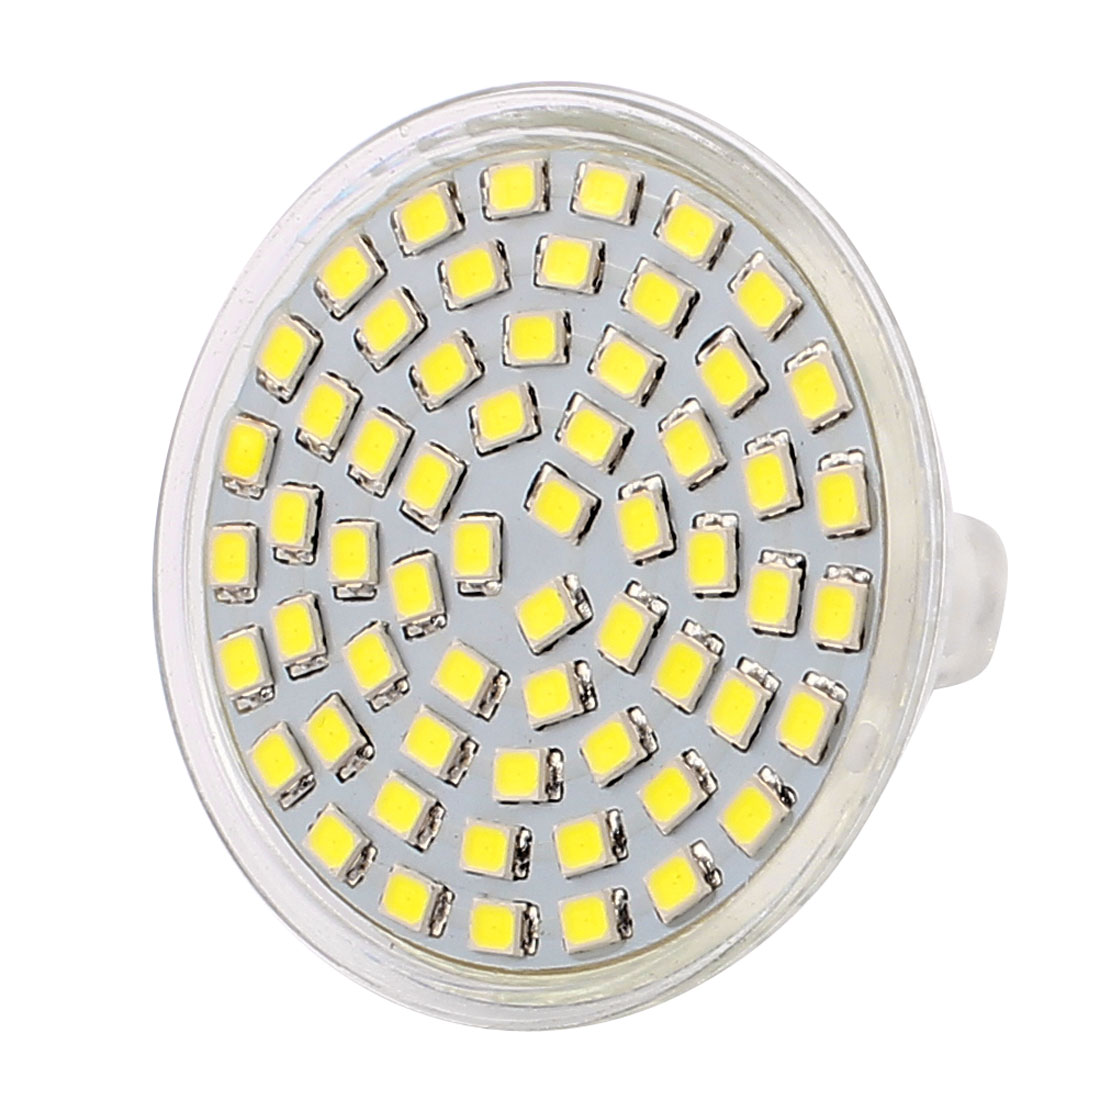 110V 6W MR16 2835 SMD 60 LEDs LED Bulb Light Spotlight Down Lamp Lighting White